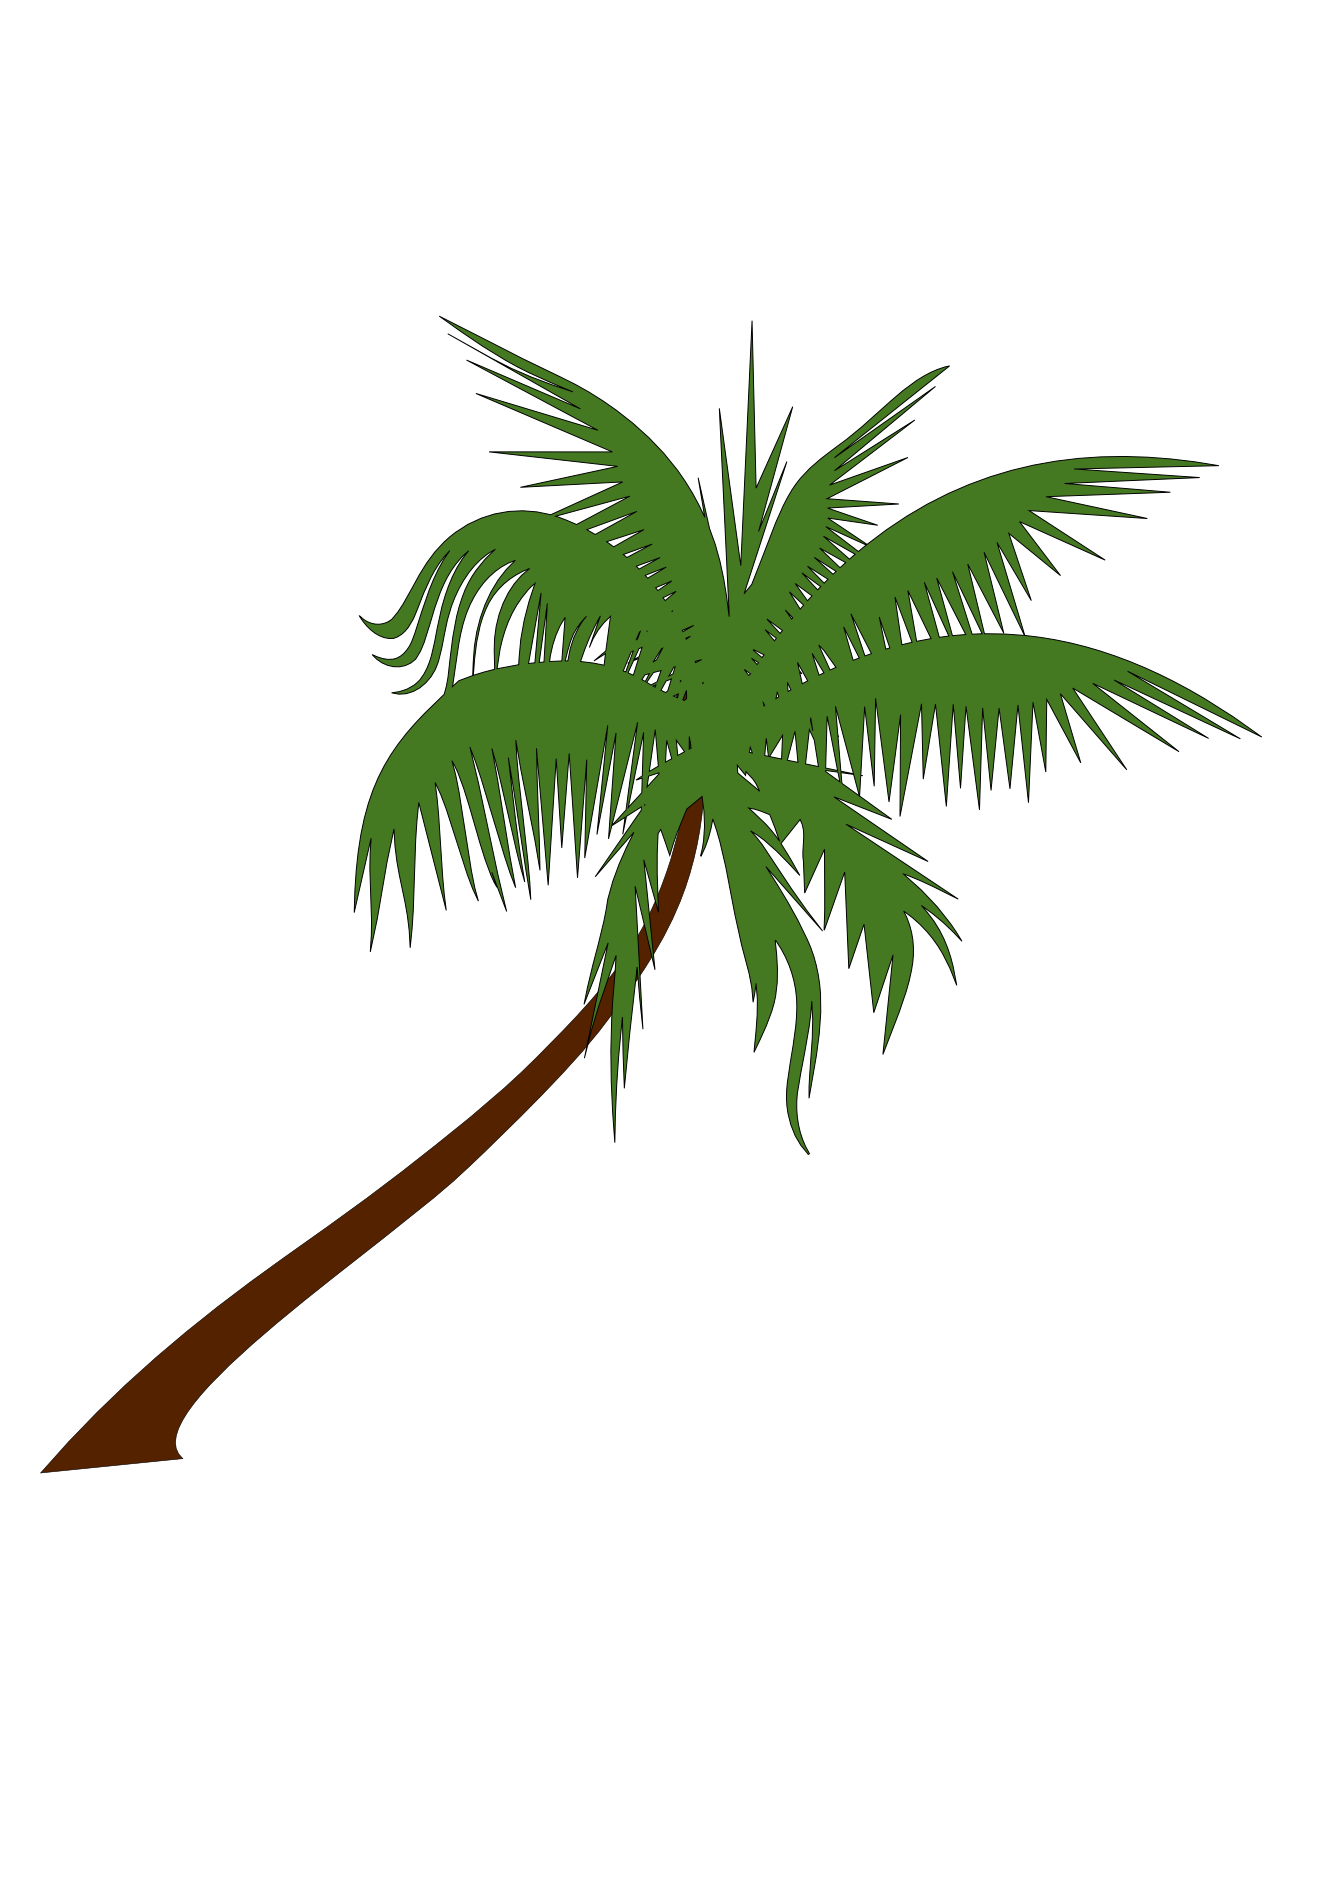 Neon palm tree clipart clip art black and white Free Neon Palm Tree Png, Download Free Clip Art, Free Clip ... clip art black and white